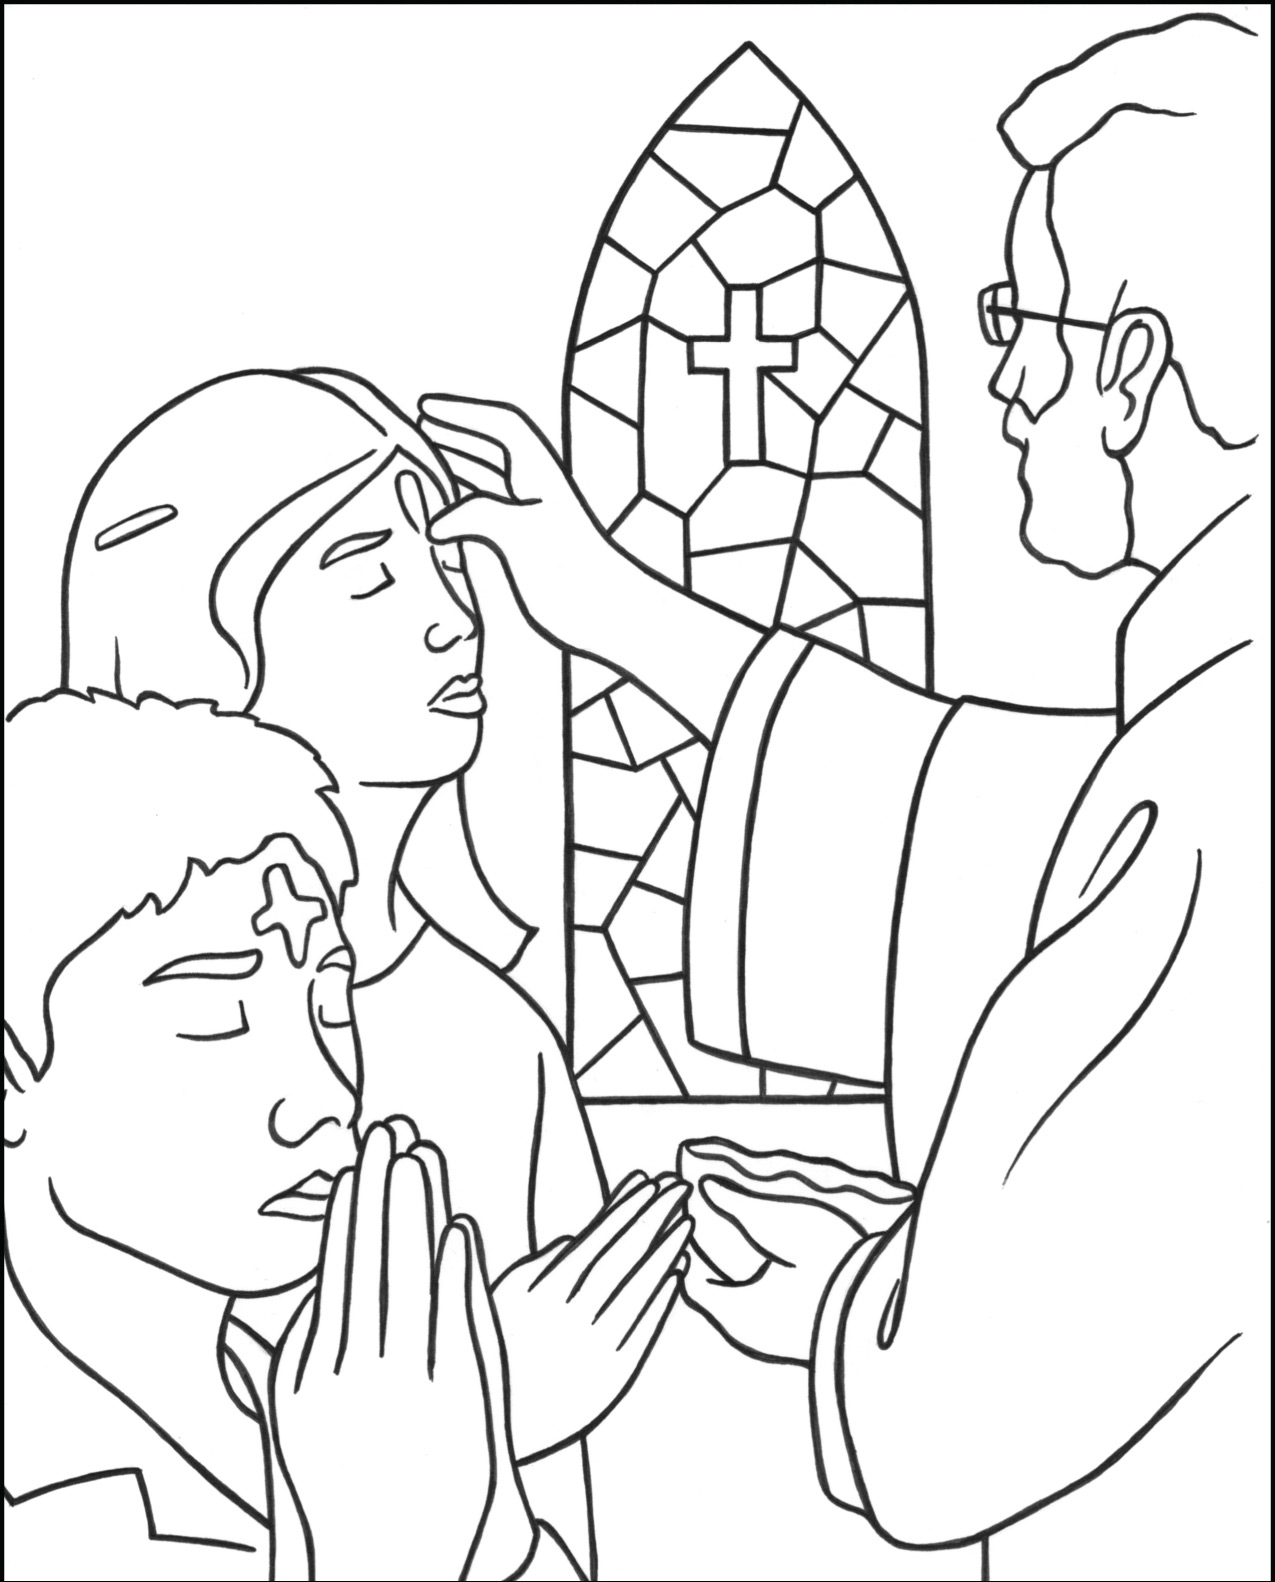 ash wednesday coloring pages ash wednesday coloring pages best coloring pages for kids pages wednesday ash coloring